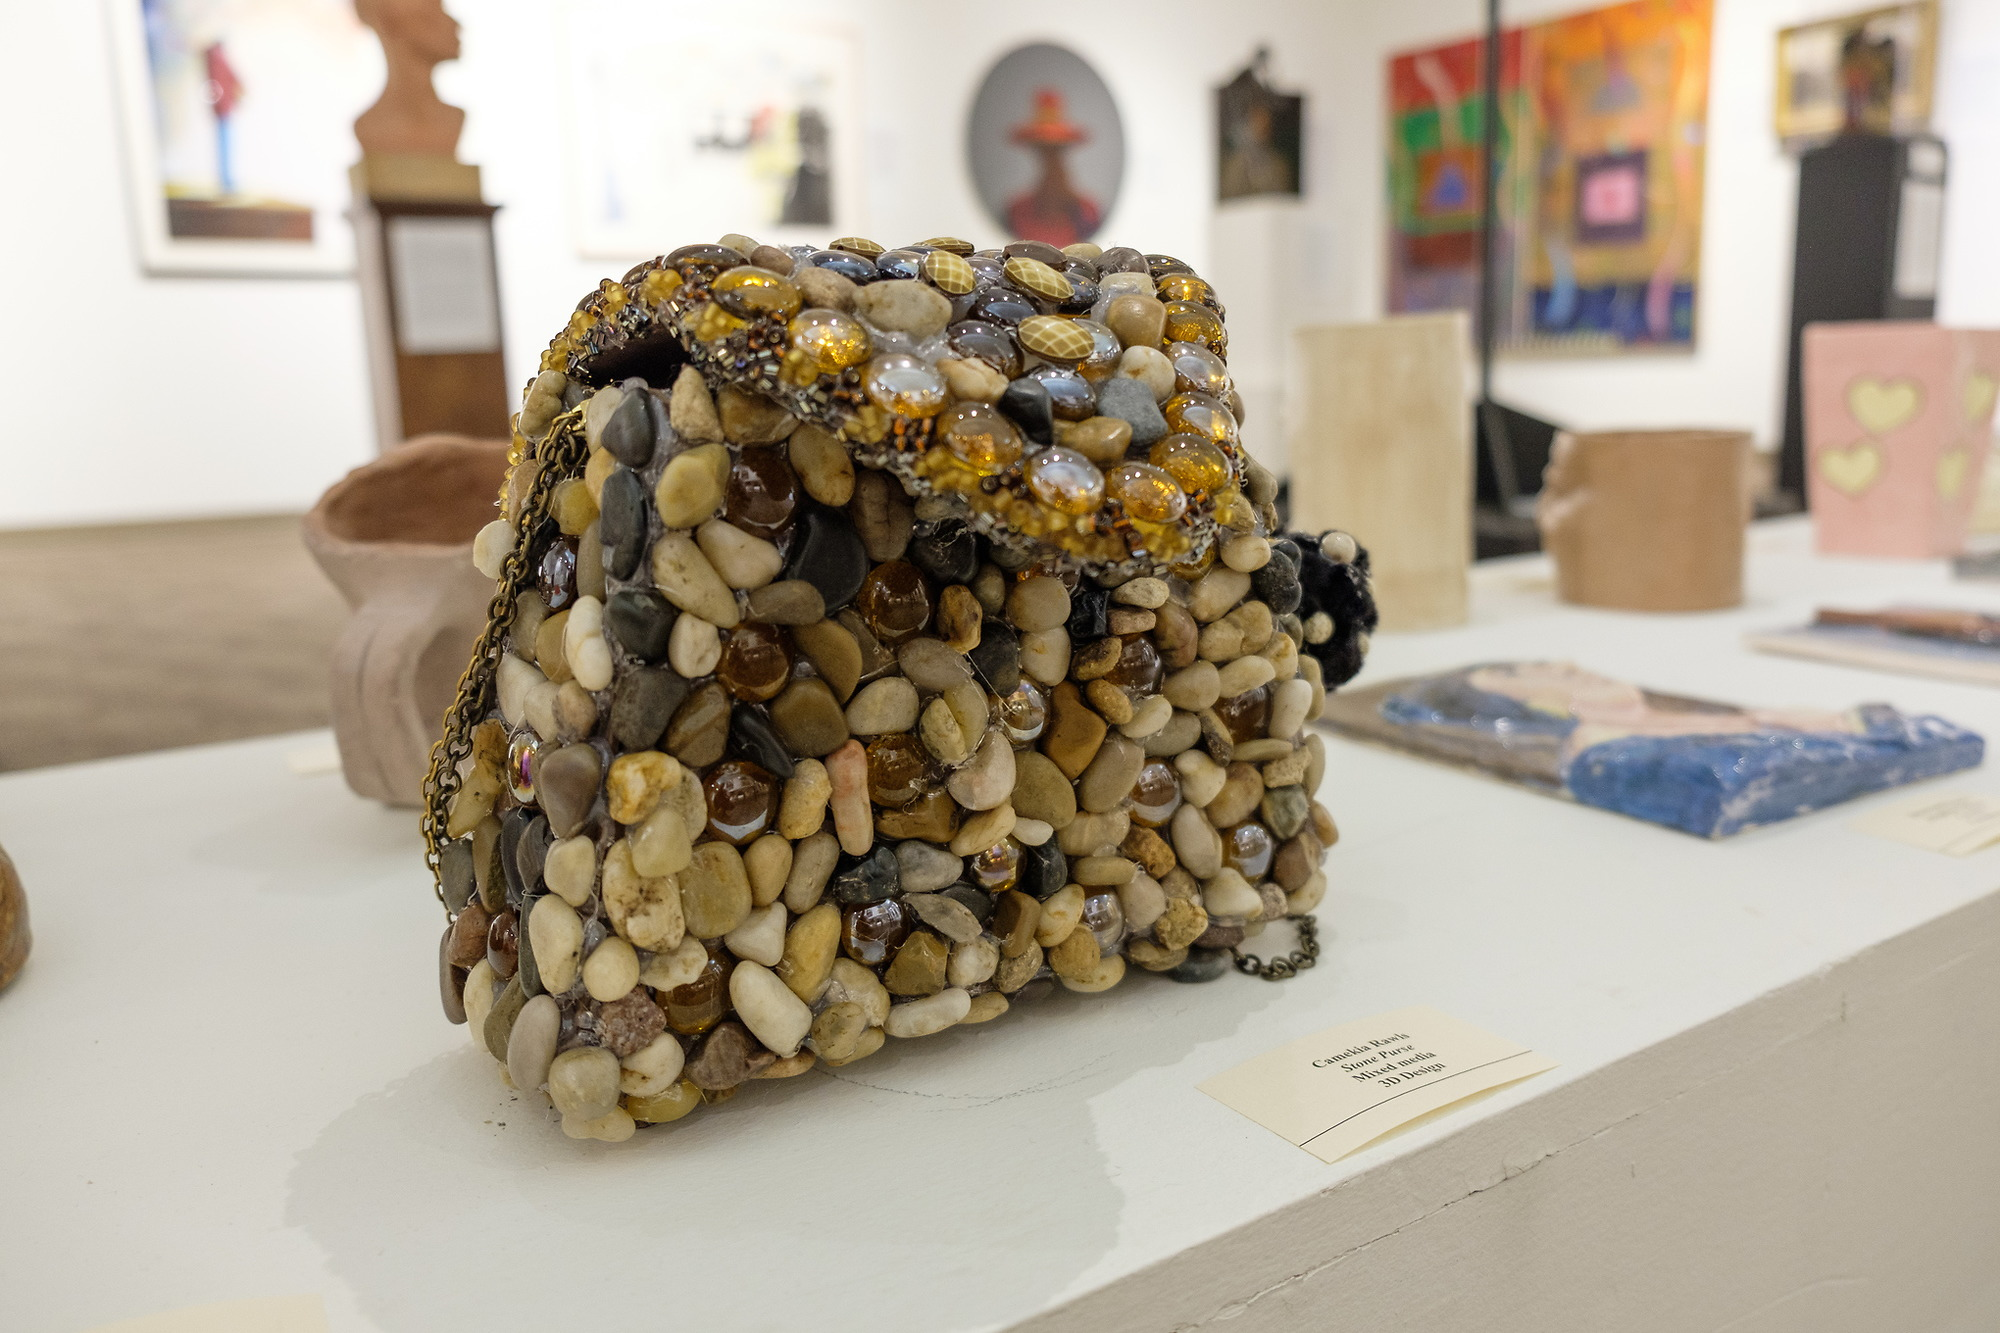 Artistic purse created with stone